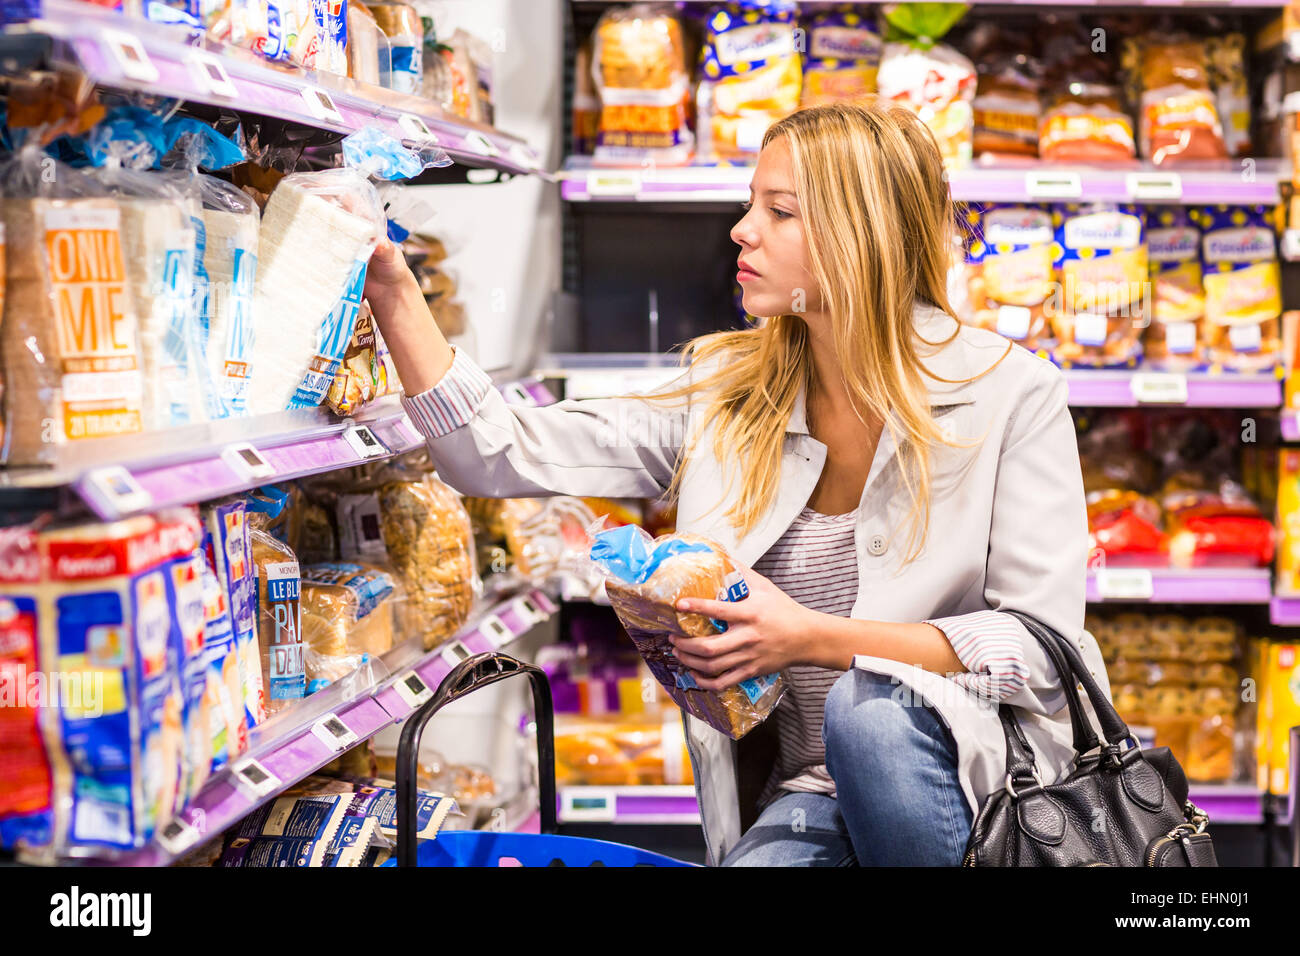 Woman in a supermarket. - Stock Image